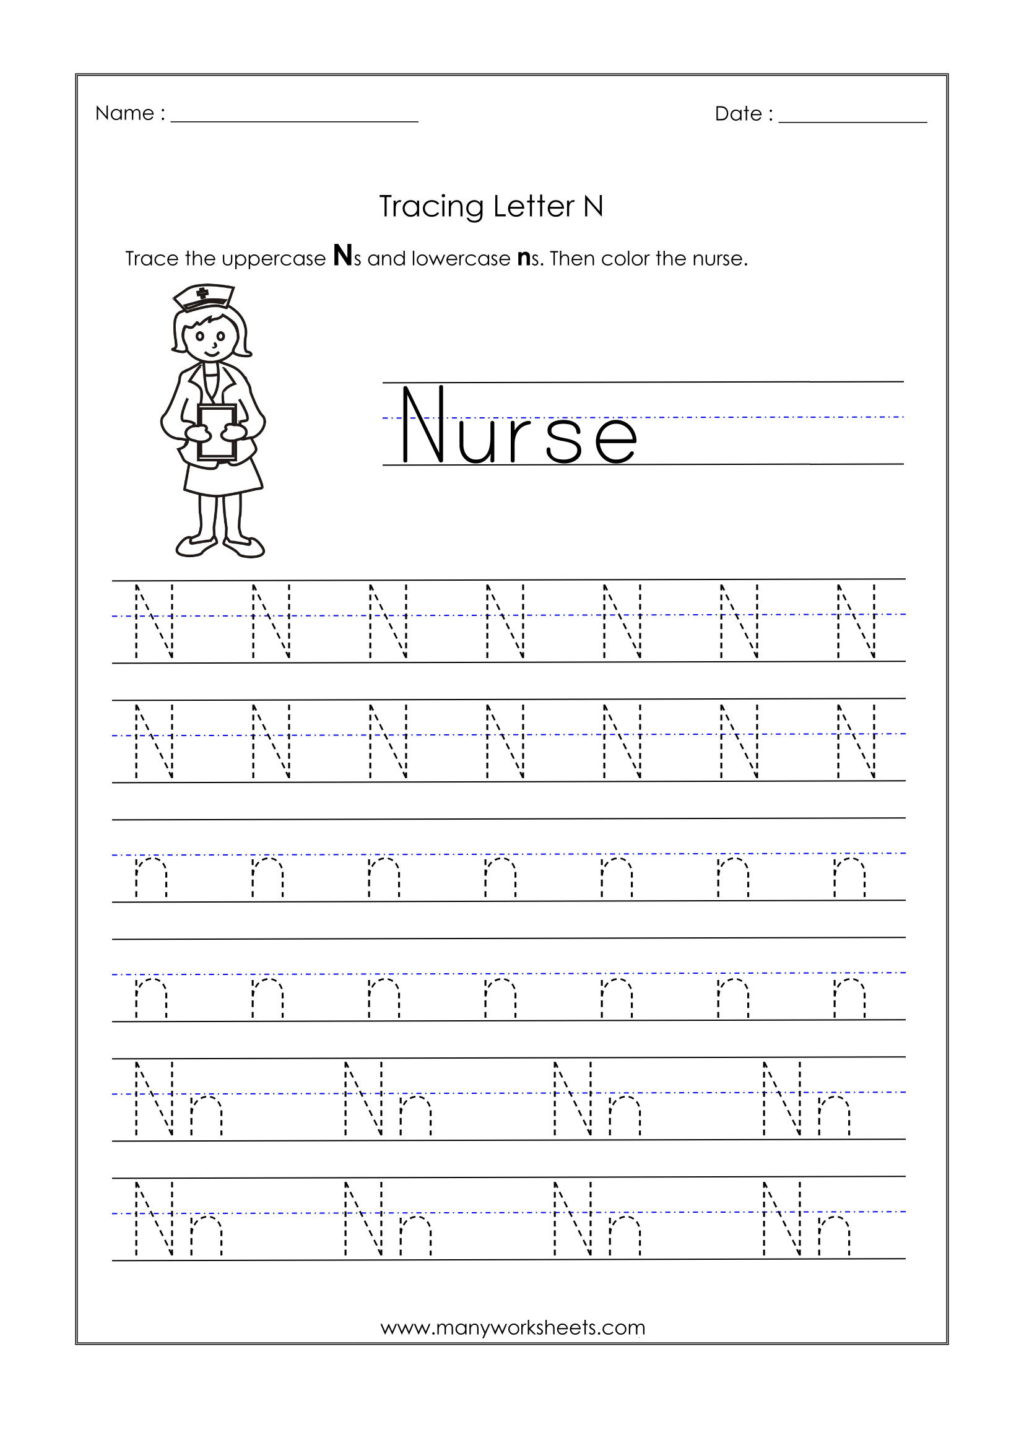 Letter N Worksheet for Preschoolers Math Worksheet Alphabet Practice Sheets for